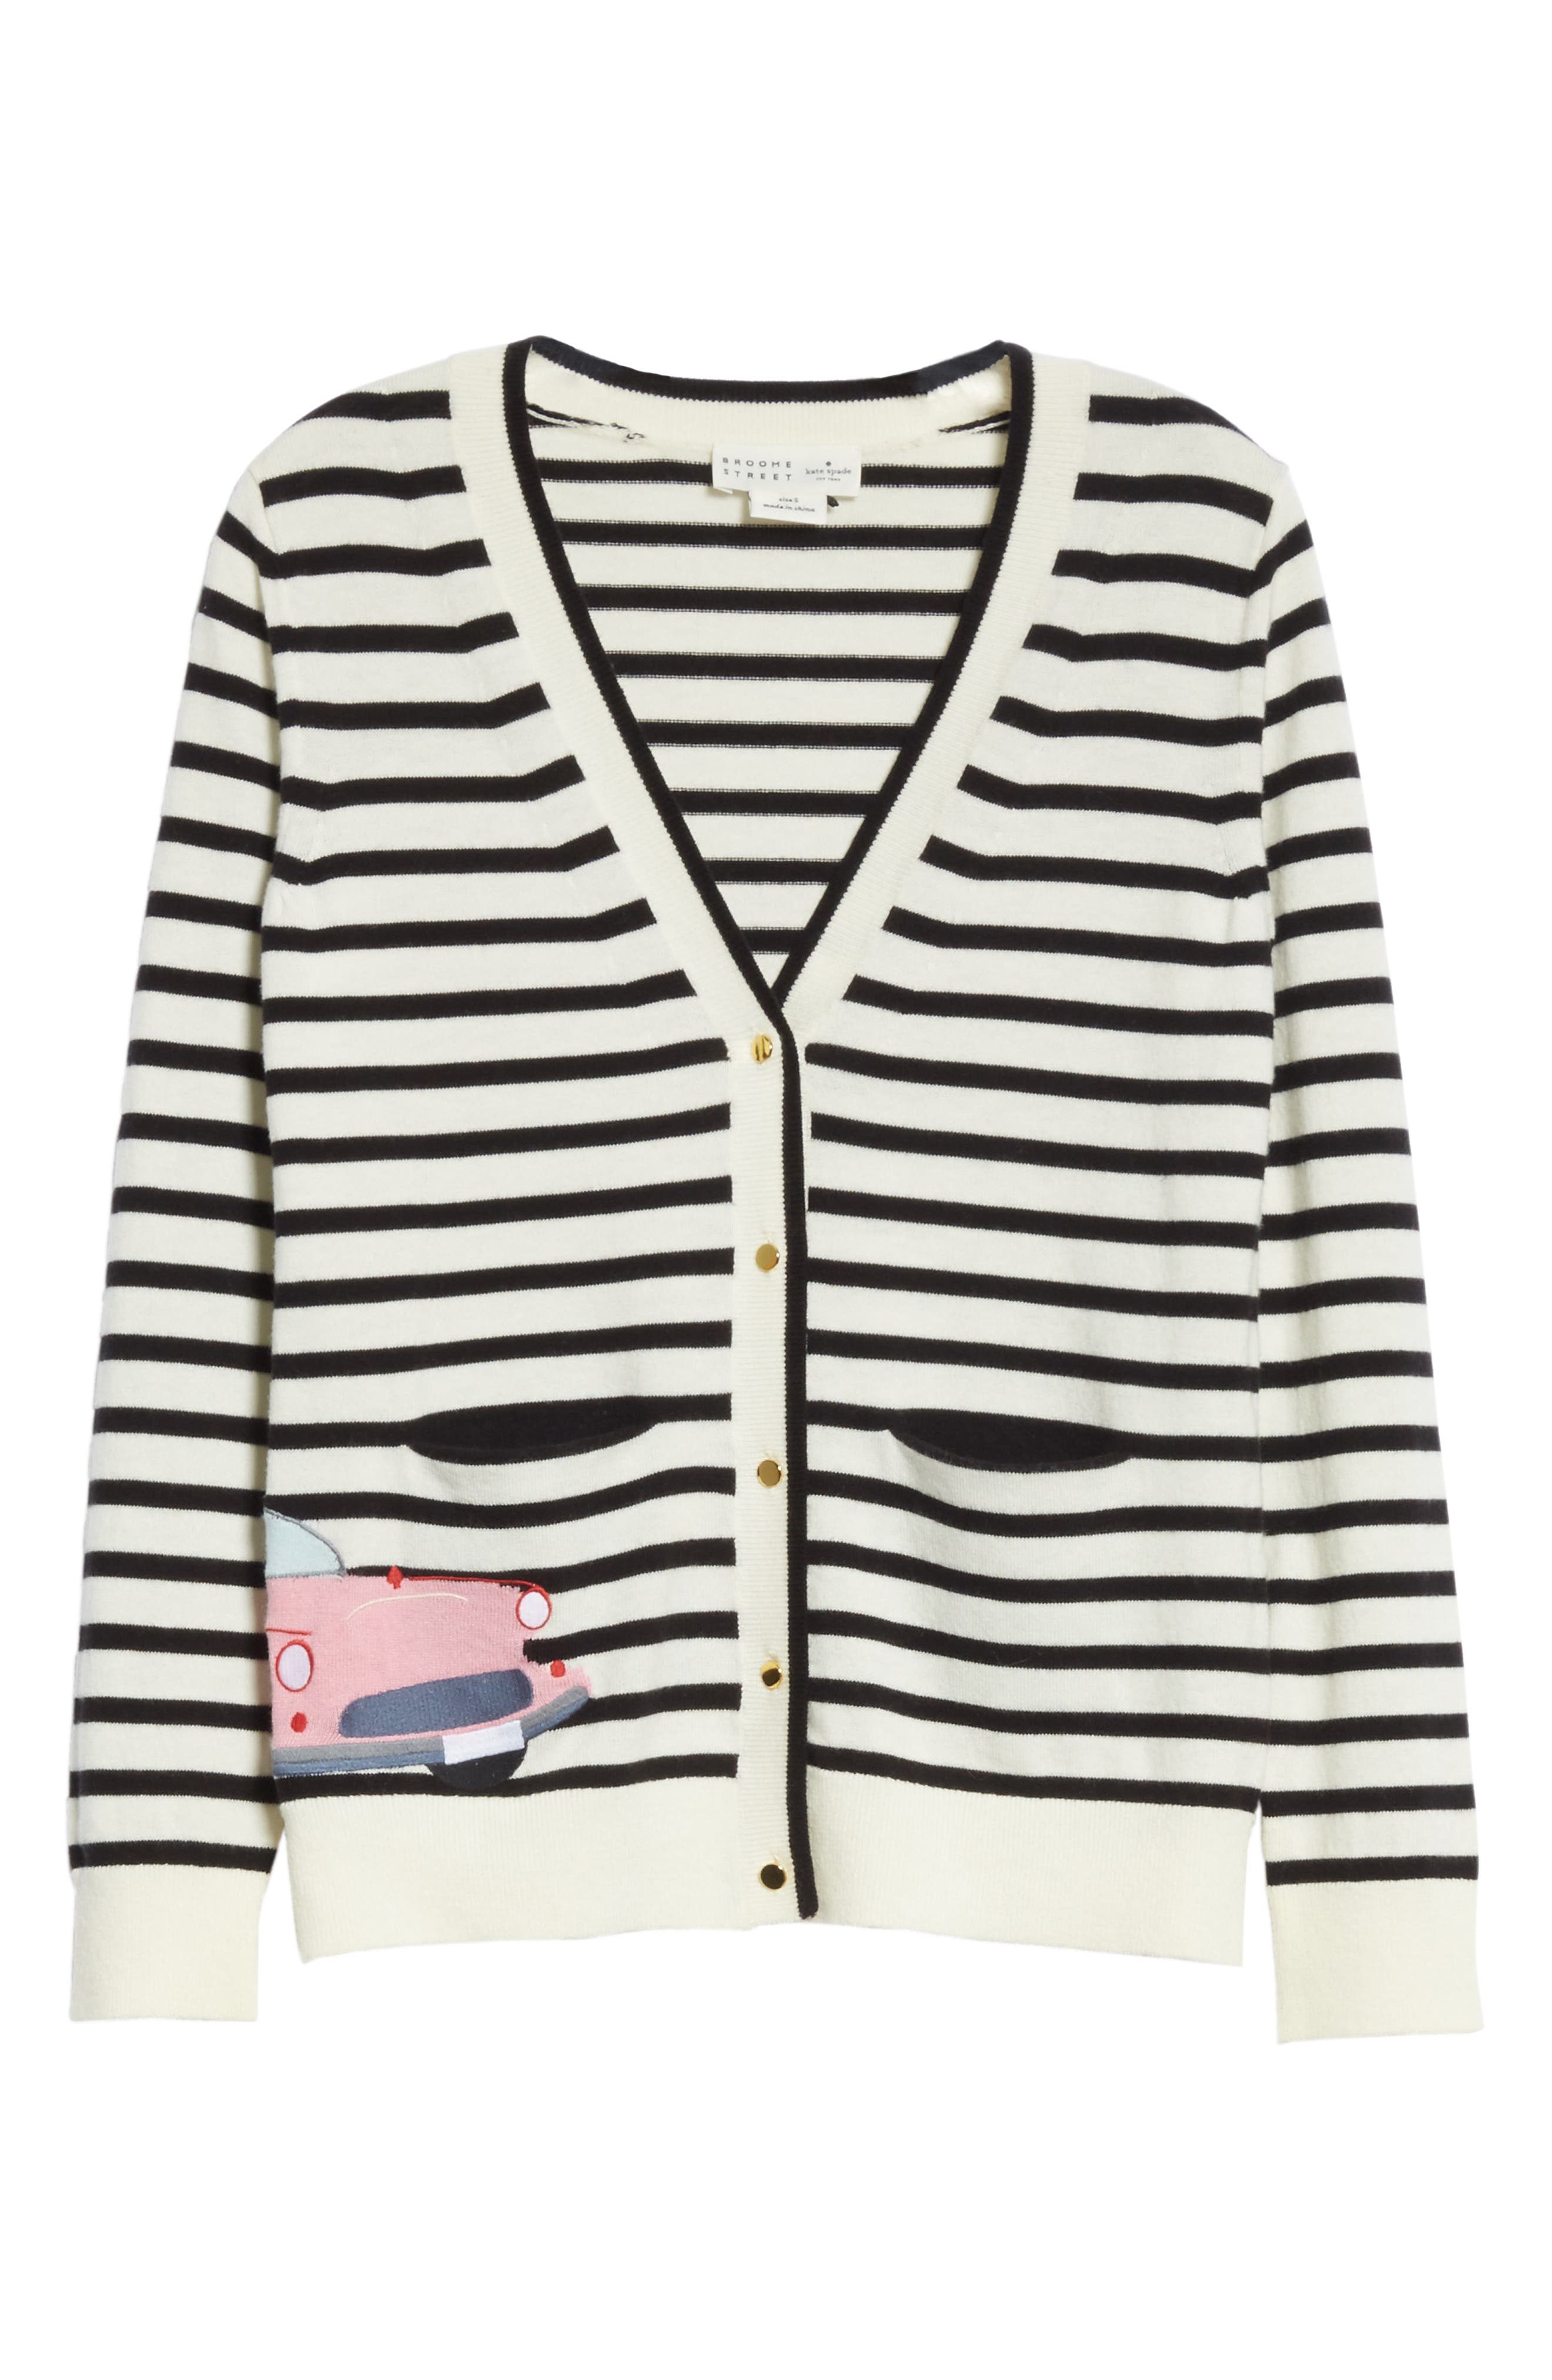 car cardigan,                             Alternate thumbnail 6, color,                             Black/ Cream Multi